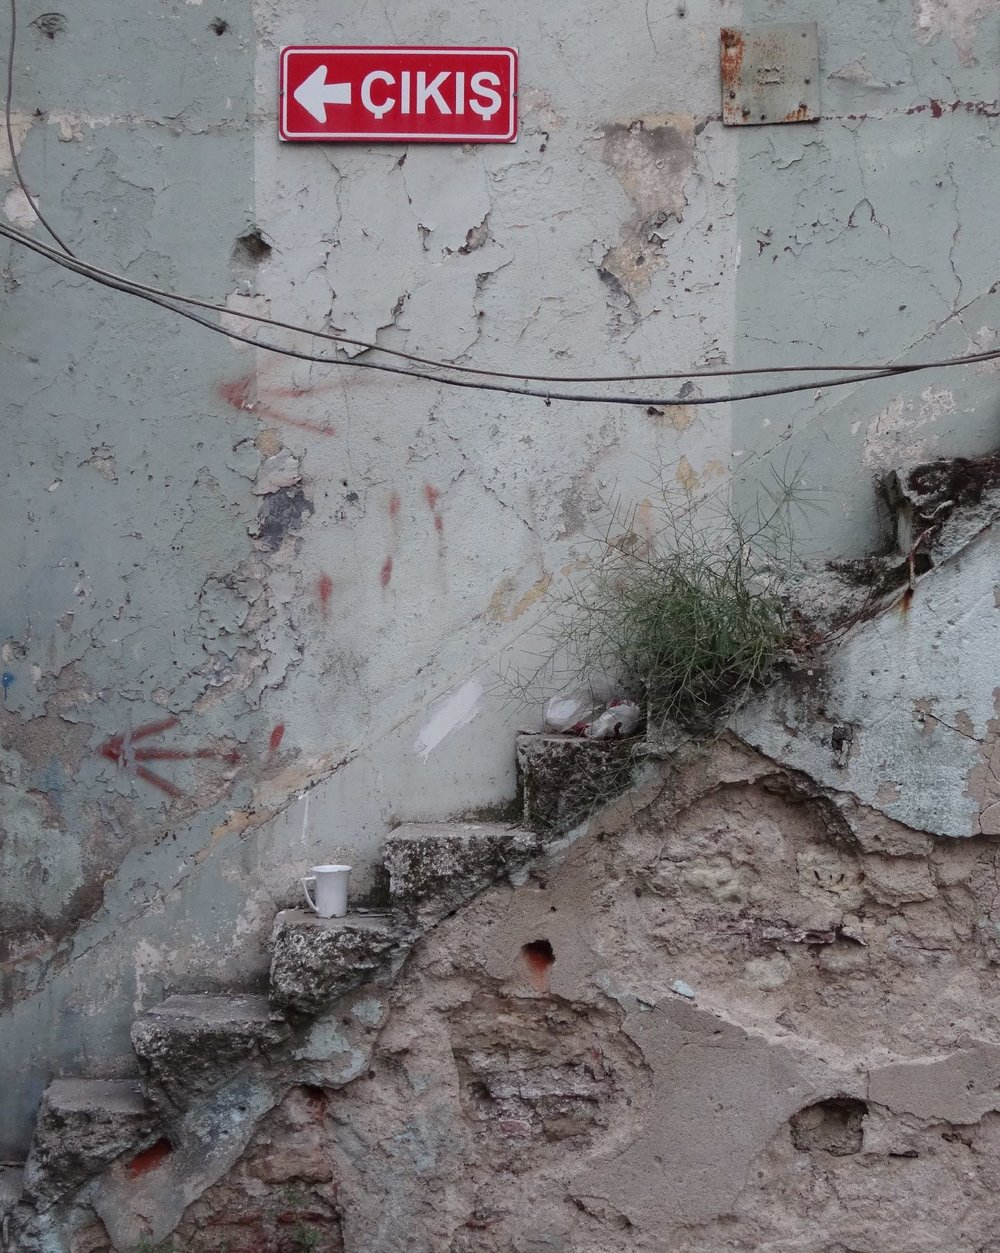 Istanbul | cup of tea on a stair in front of a derelict old wall | ©sandrine cohen